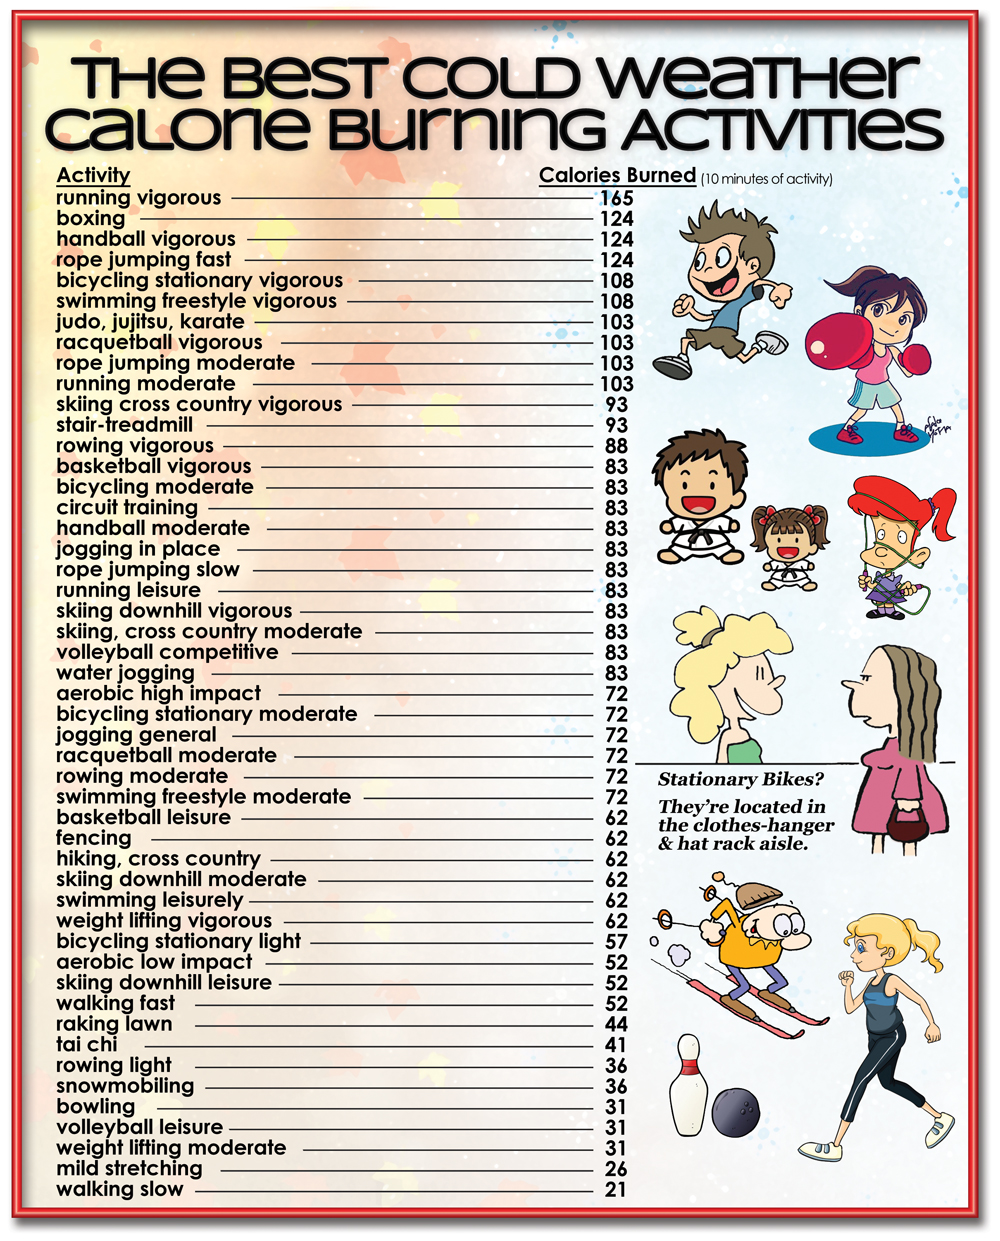 Cold Weather Calories Burn Infographic